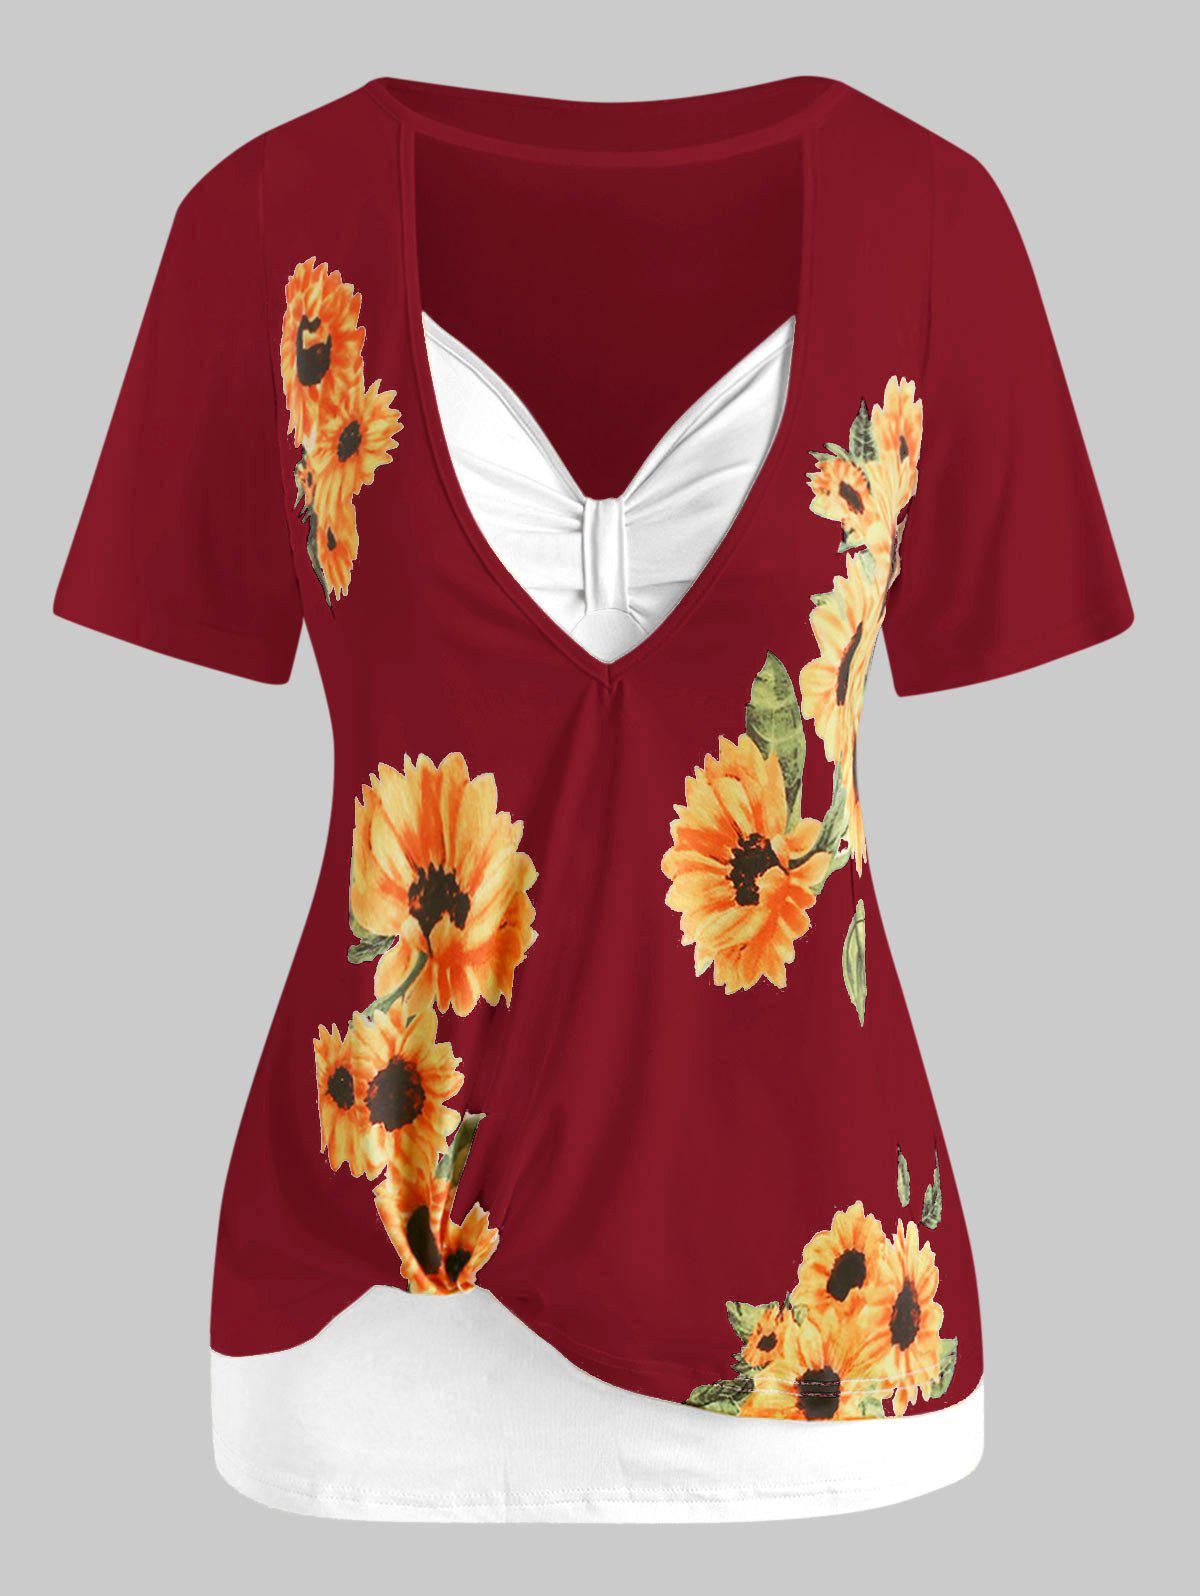 Fashion Plus Size Cutout Sunflower Print Tee and Tank Top Set